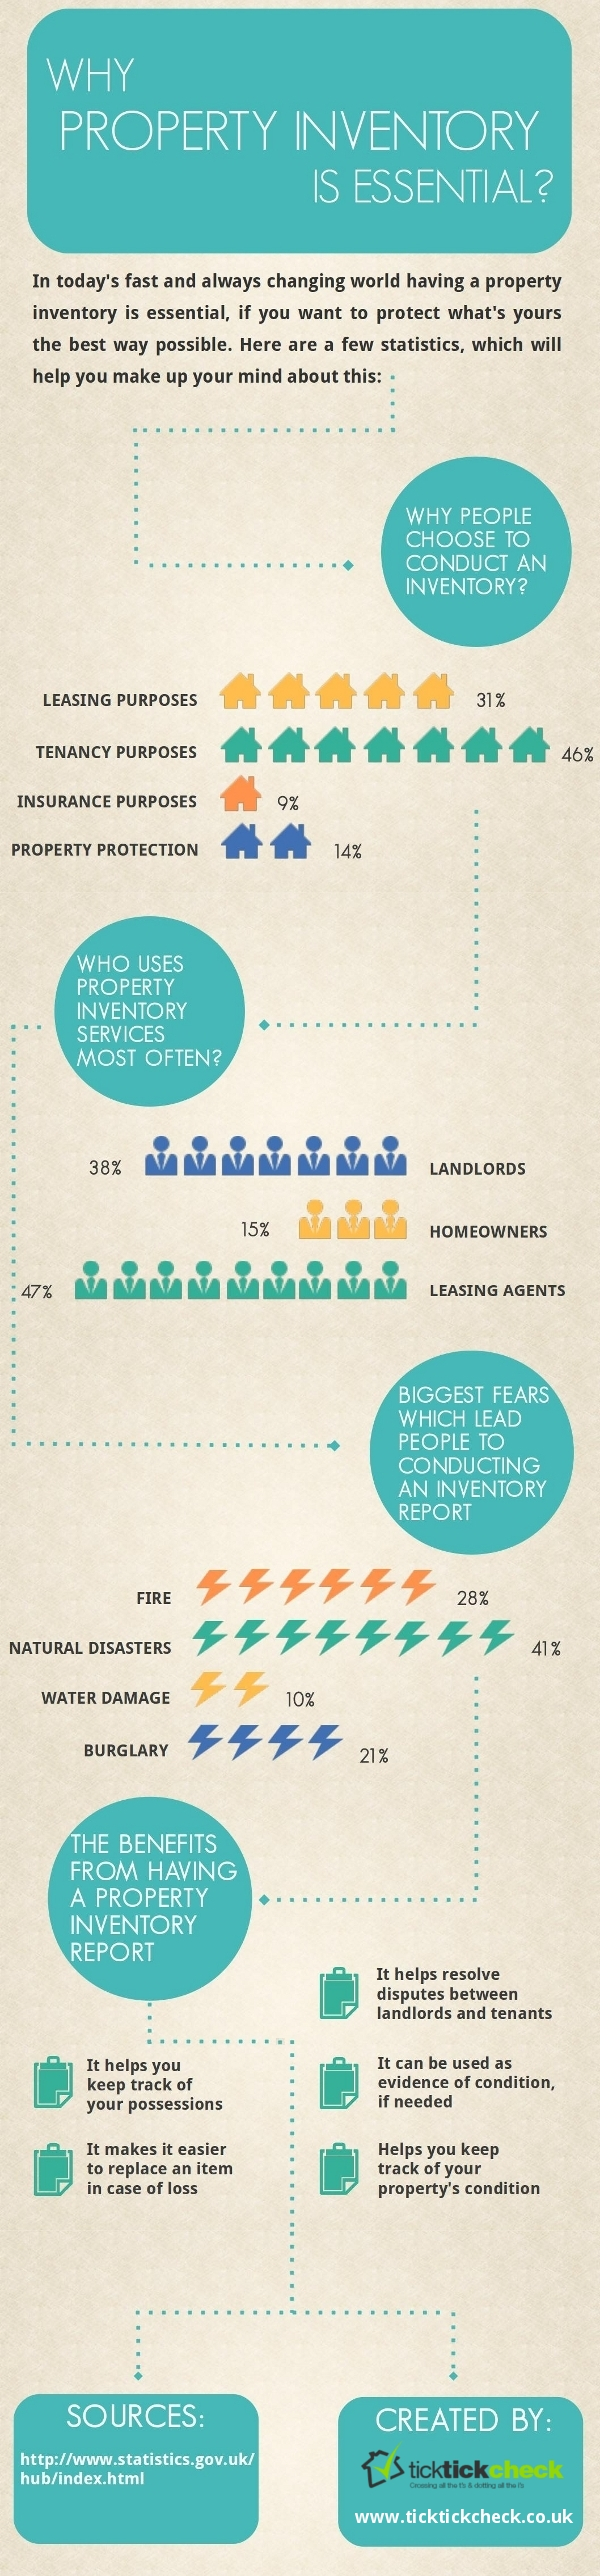 Hot Property Inventory Statistics